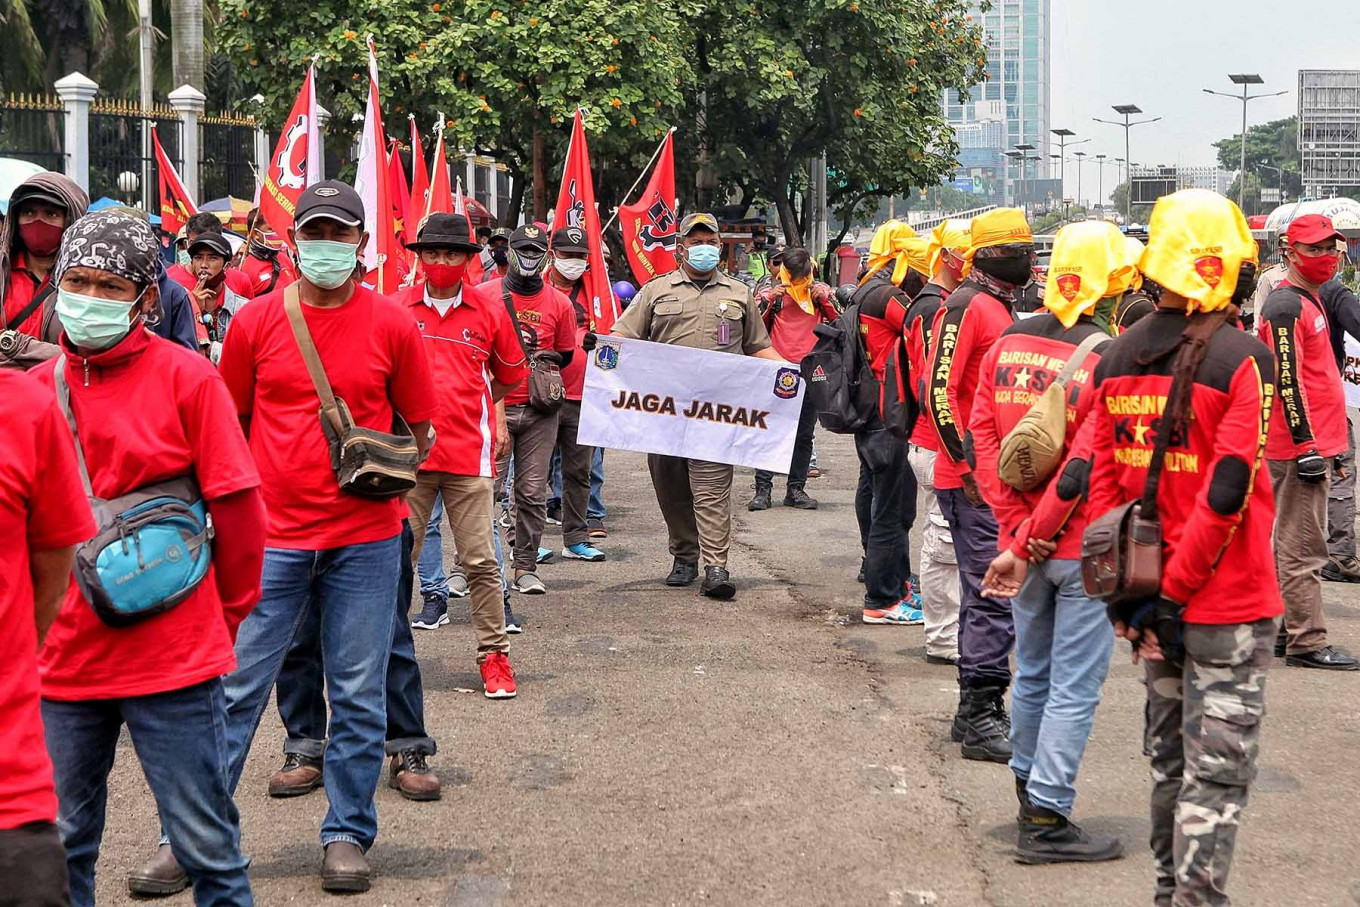 A Jakarta Public Order Agency (Satpol PP) officer holds up a banner on health protocols as workers protest the Job Creation Law in Jakarta on Nov. 17. The agency has urged protesters to wear masks and keep their distance to prevent the spread of COVID-19. JP/Seto Wardhana